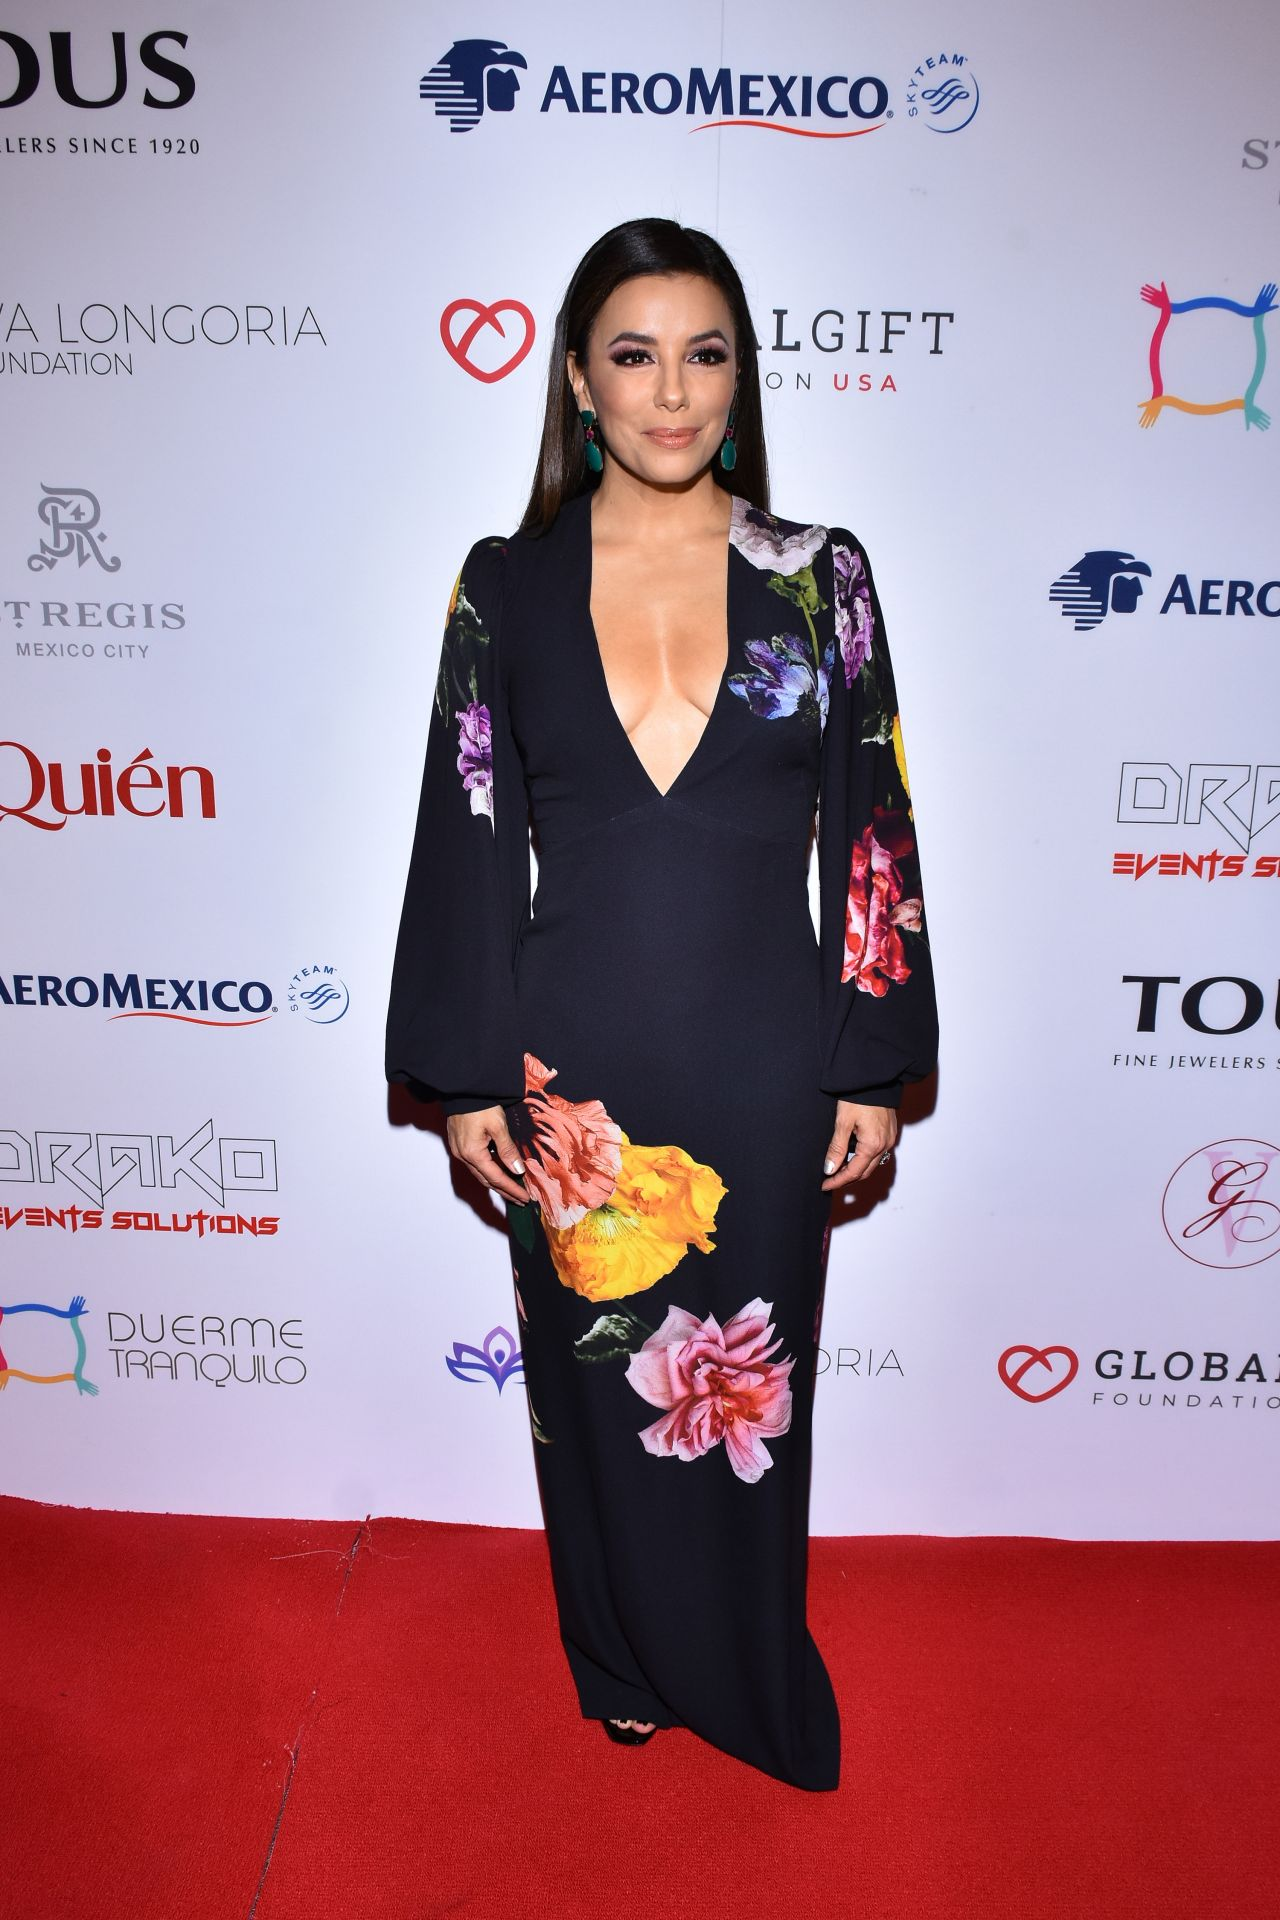 eva-longoria-in-monique-lhuillier-2019-global-gift-foundation-in-mexico-city